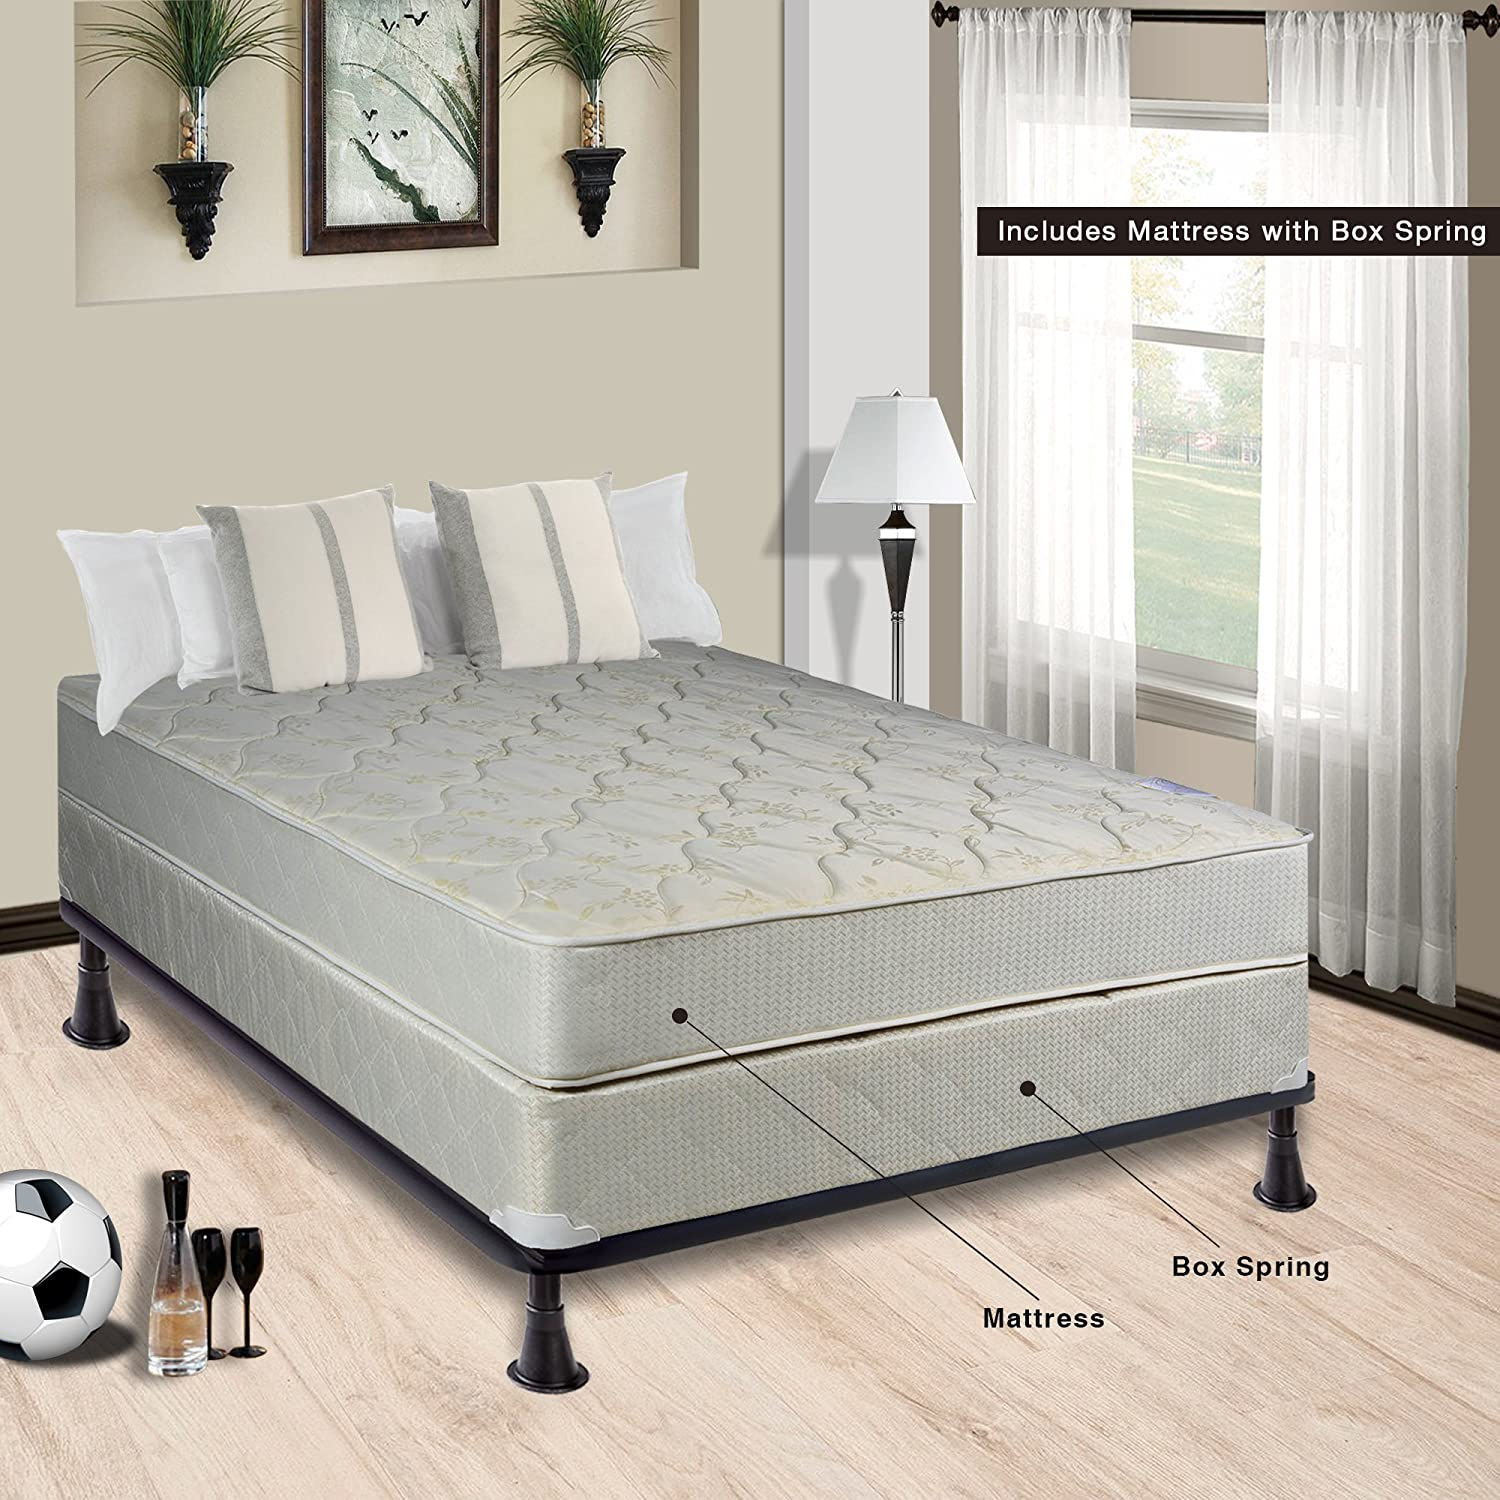 memory mattress box platform bedroom boxspring you large a full bed with purchase size of i do and spring foam queen only need